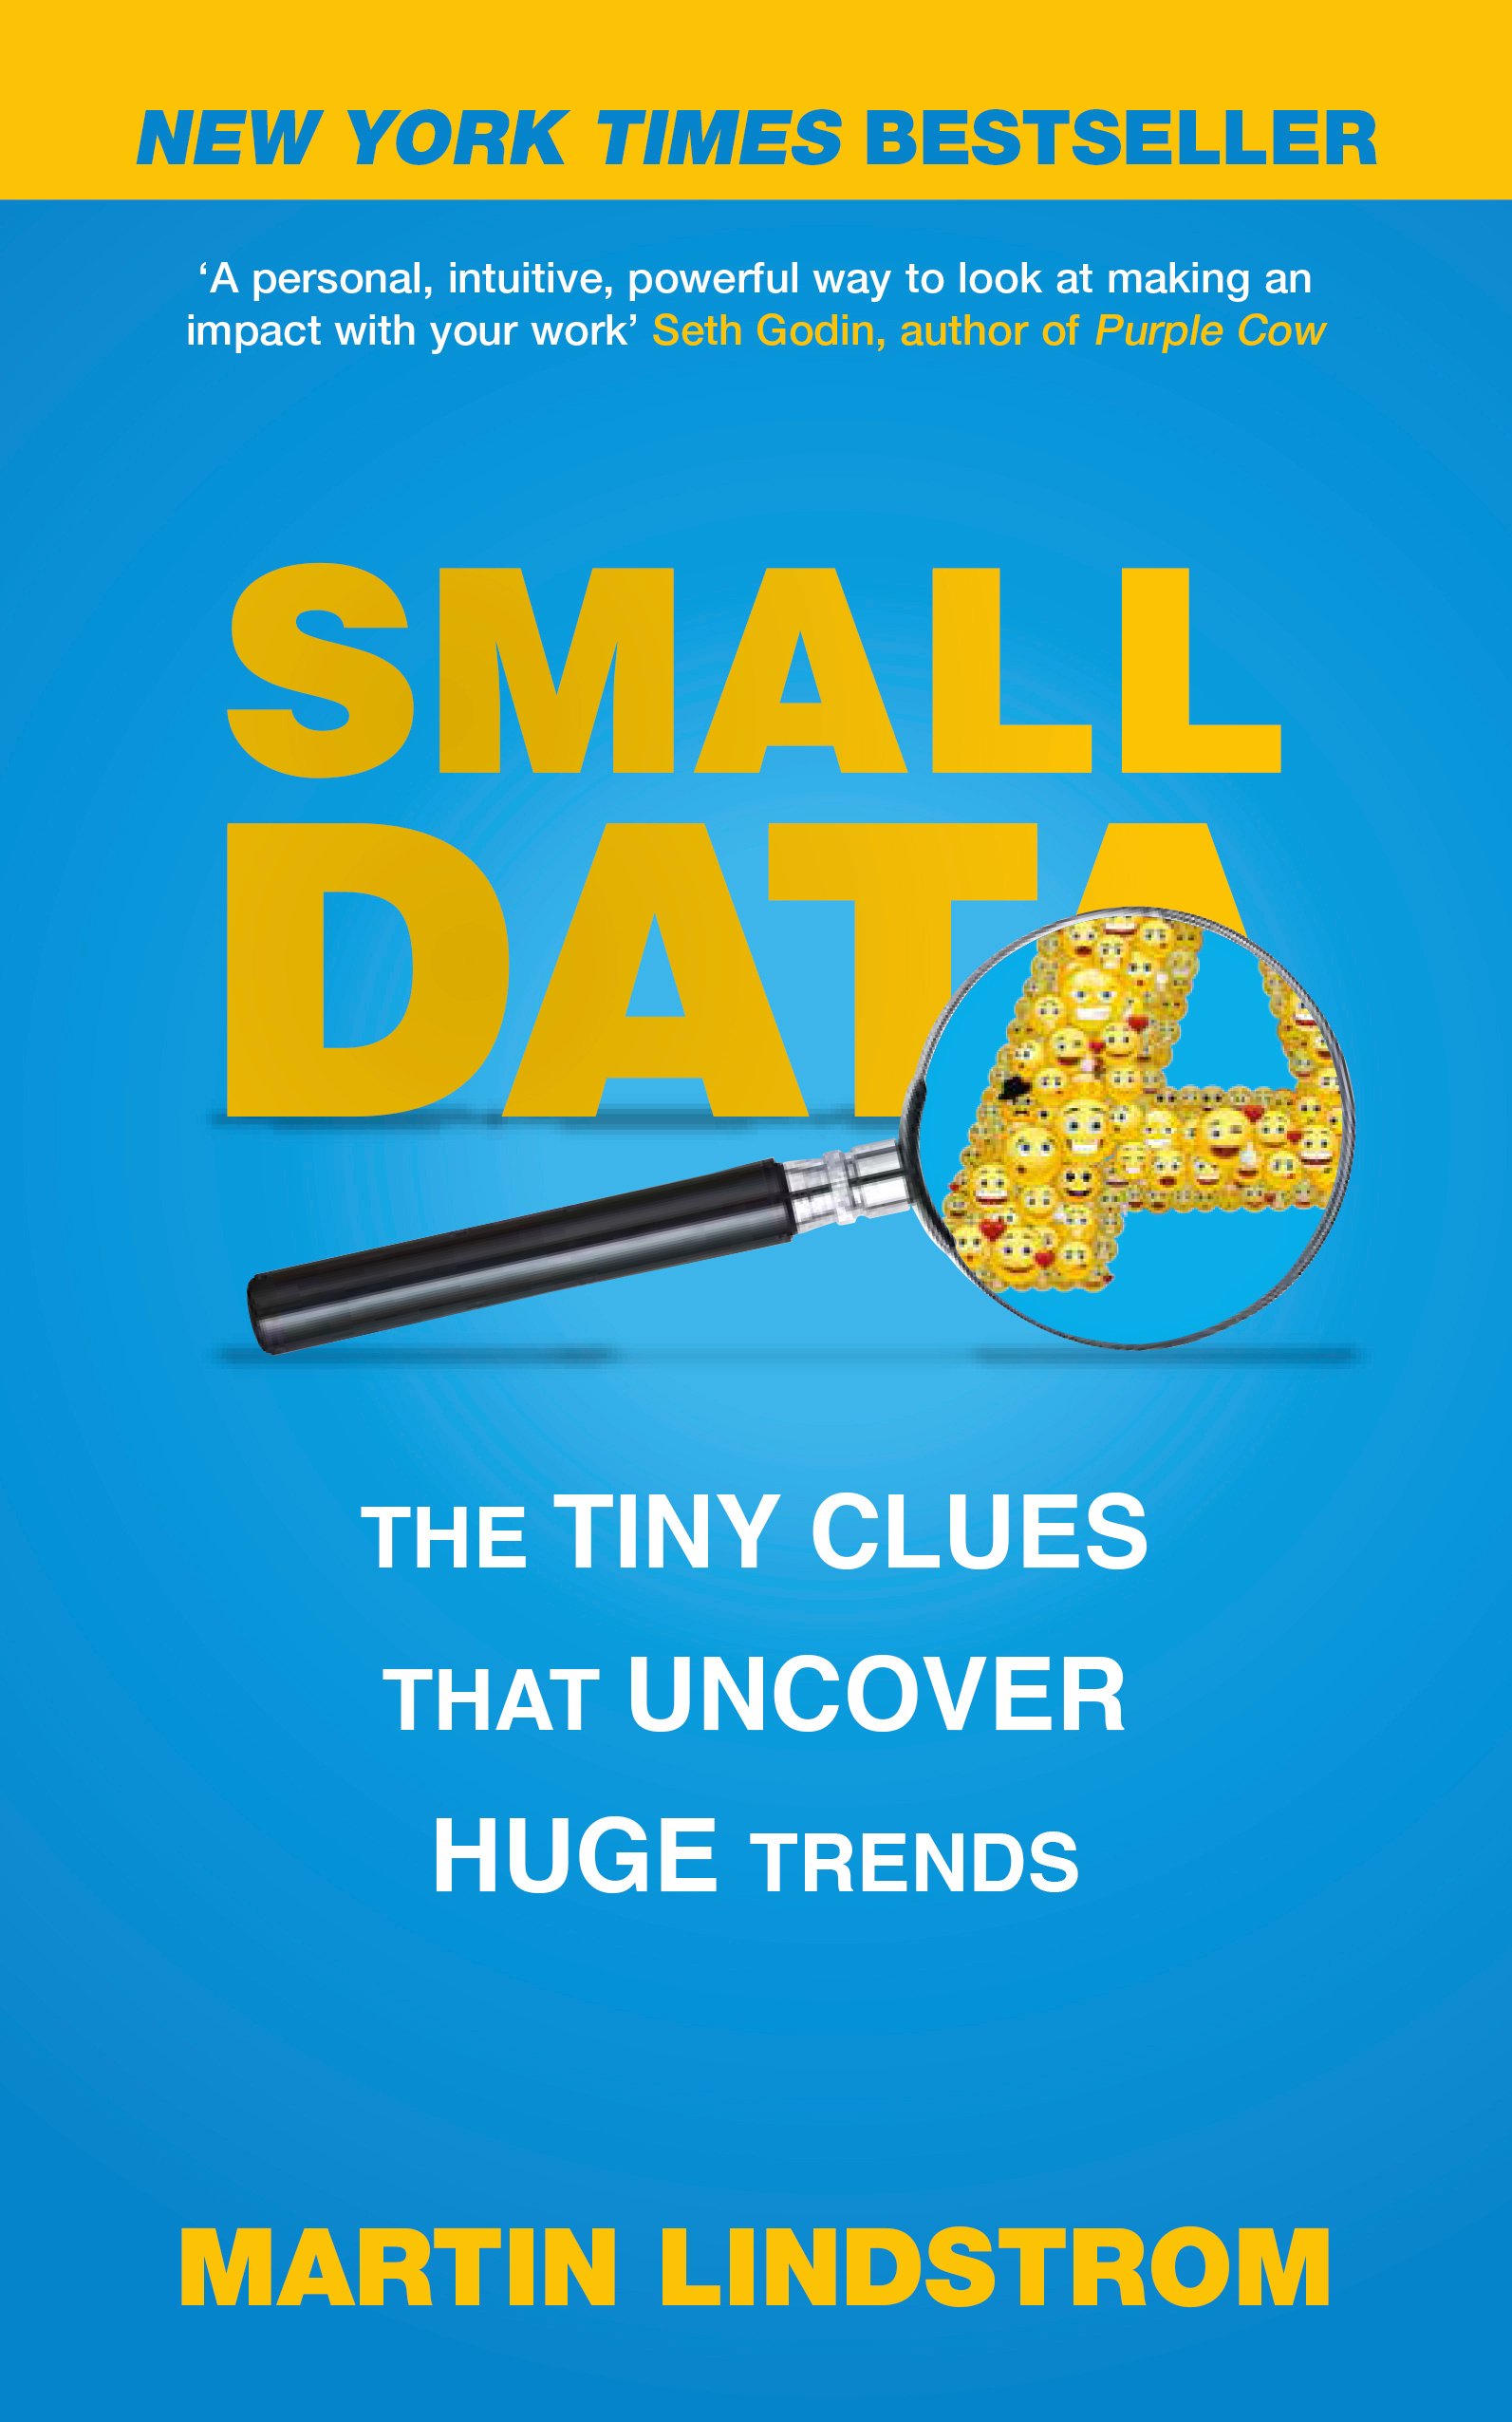 Small Data The Tiny Clues That Uncover Huge Trends By Martin